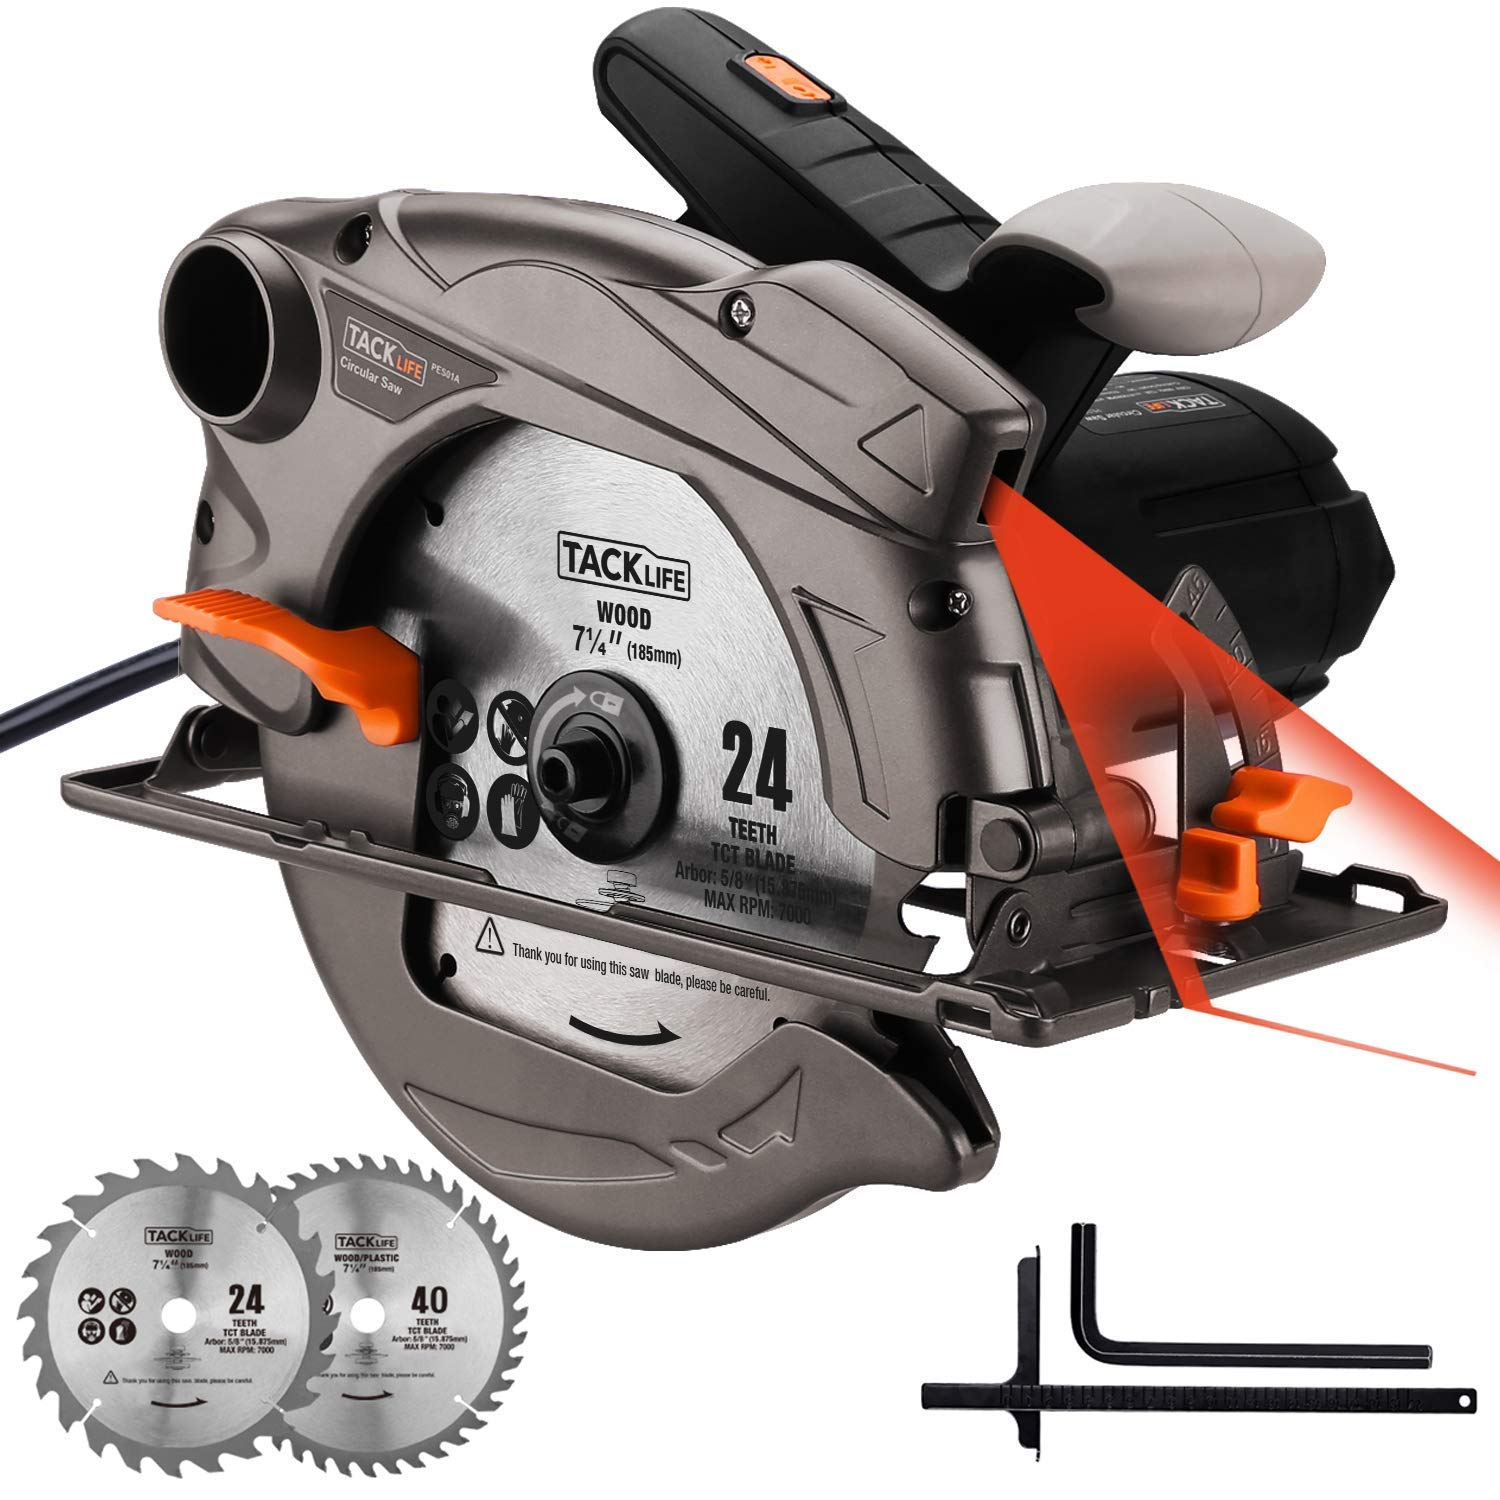 TACKLIFE 7-1 4 Classic Circular Saw with Laser, 2 Blades 24T 40T , 12.5-Amp 1500W 4700 RPM Corded Saw with Lightweight Aluminum Guard, Max Cutting Depth 2-1 2 90 , 1-4 5 45 – PES01A